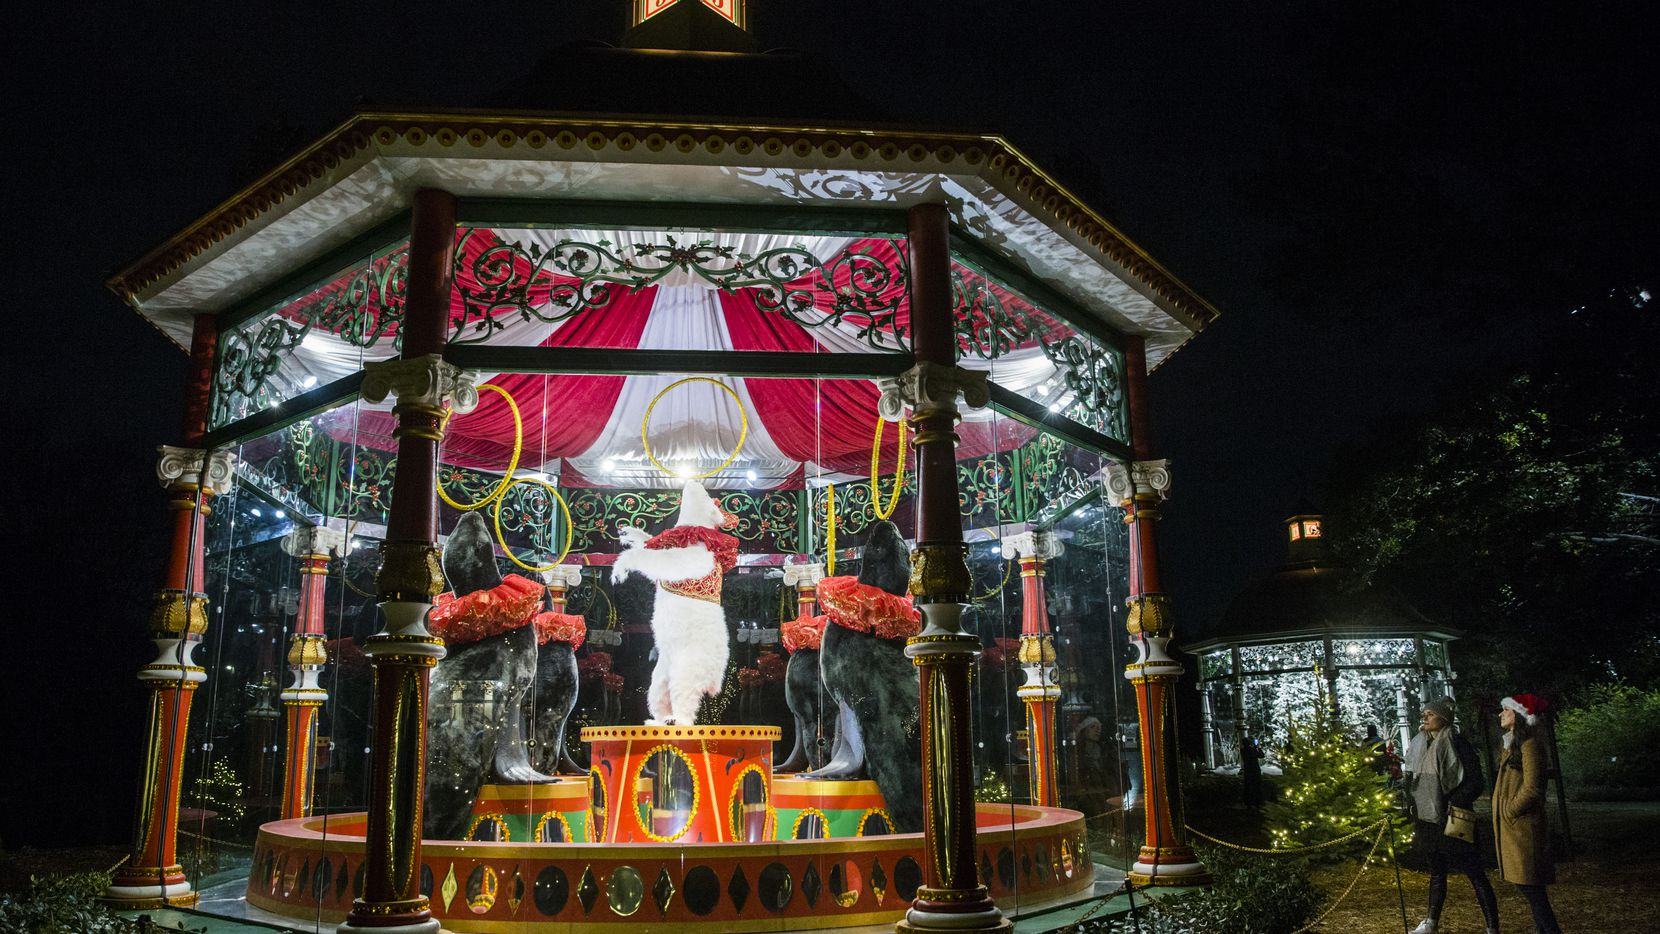 Visitors walk past the Five Golden Rings gazebo at Holiday at the Arboretum, featuring The 12 Days of Christmas on Tuesday, November 12, 2019 at the Dallas Arboretum in Dallas. (Ashley Landis/The Dallas Morning News)